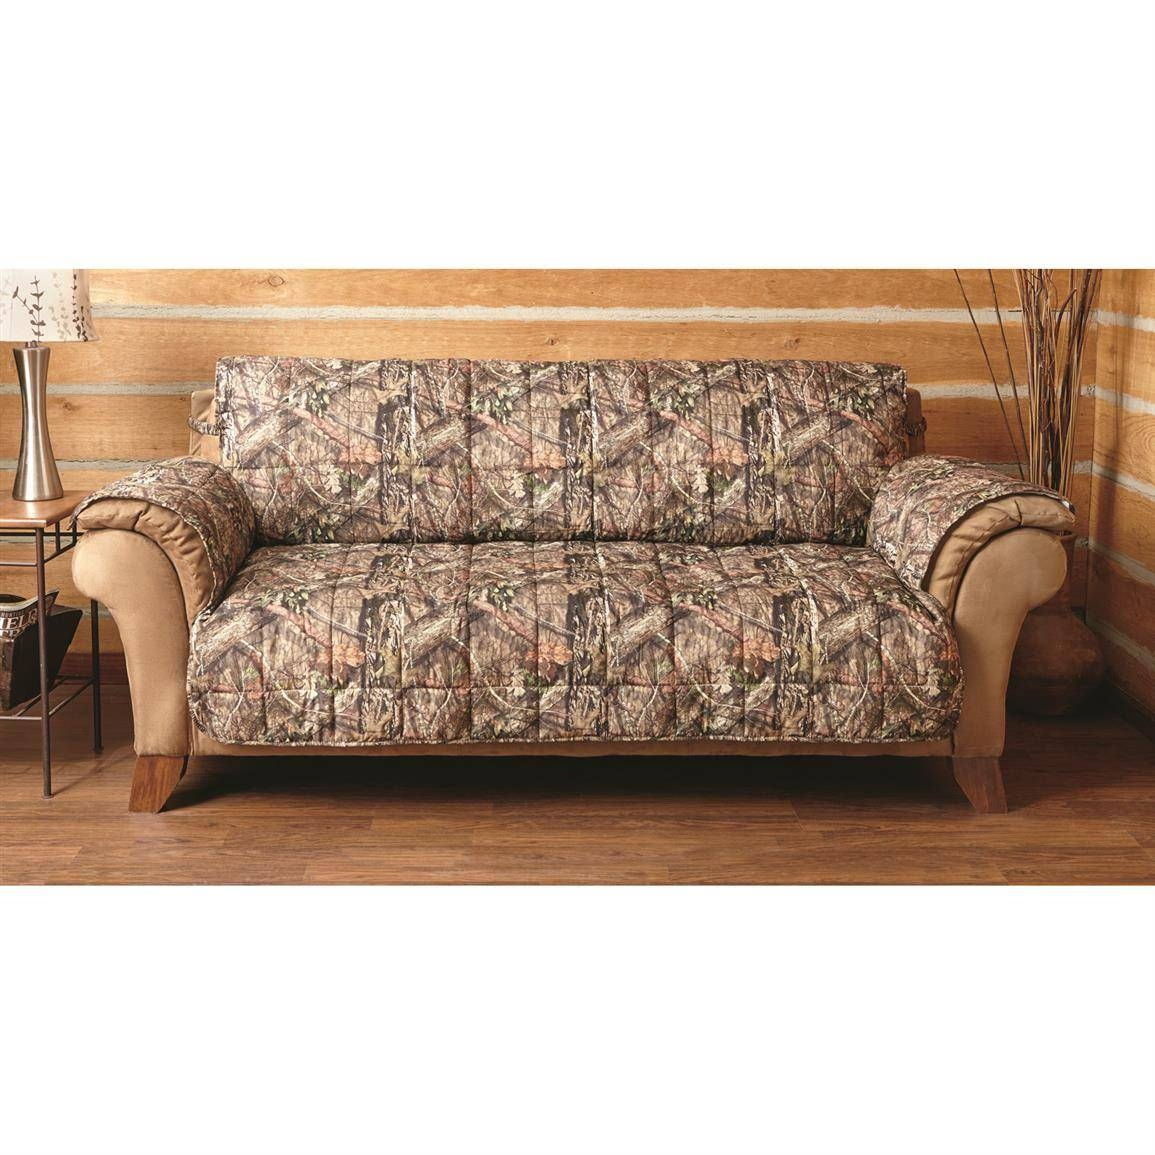 Mossy Oak Camo Furniture Covers - 647980, Furniture Covers At intended for Camo Sofa Cover (Image 15 of 30)